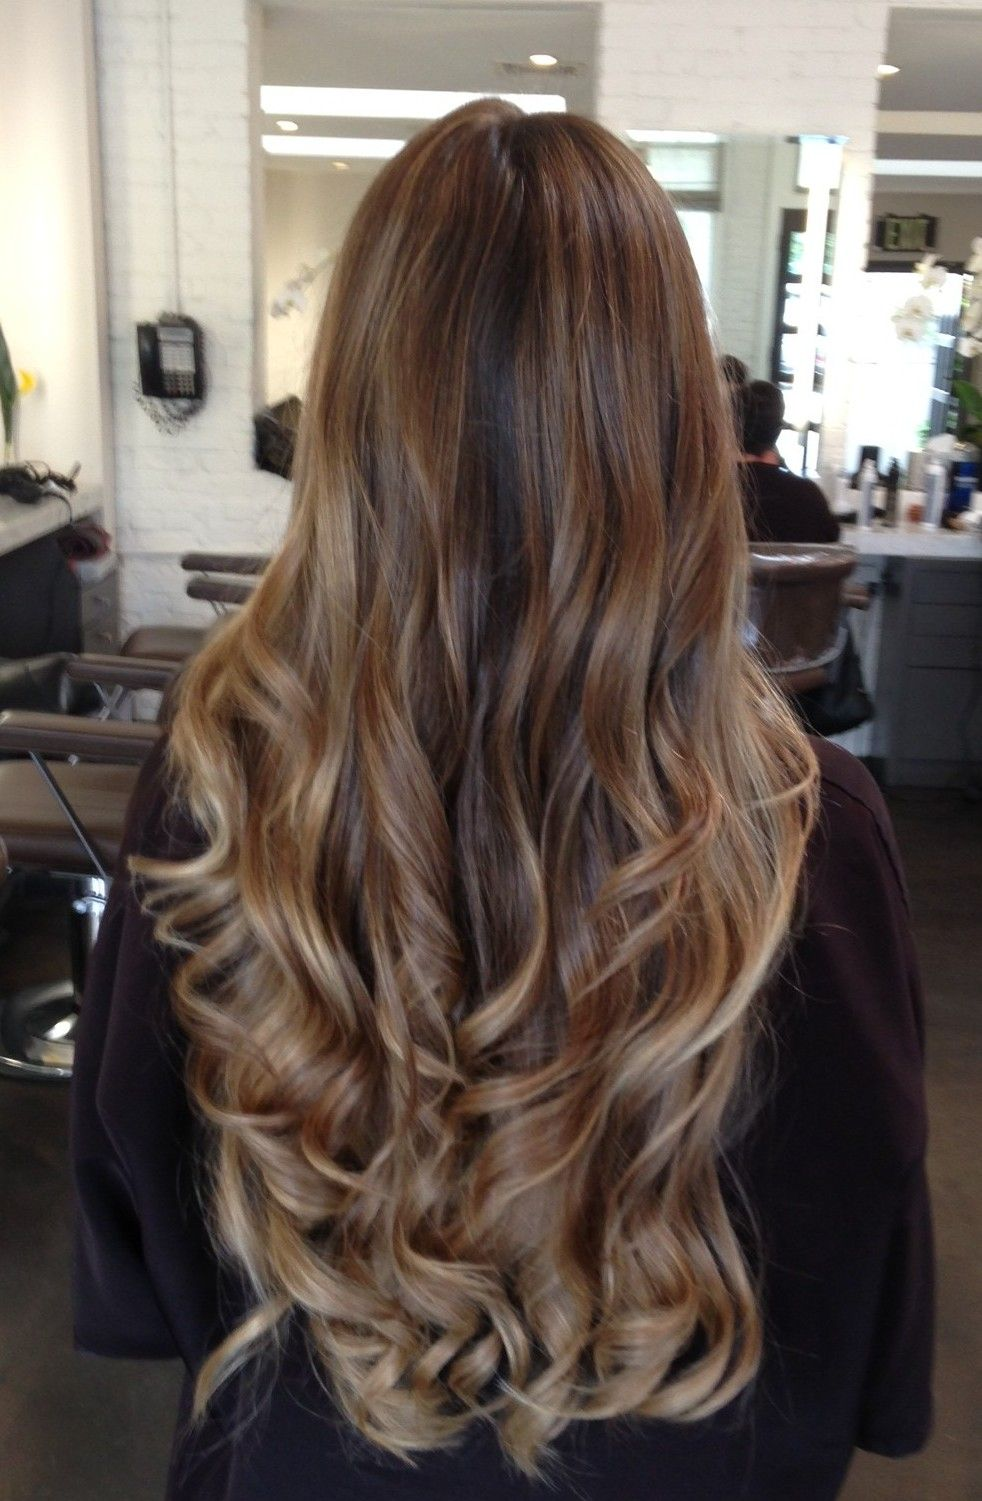 Gorgeously Thick And Luscious Hair Can Be Achieved Thanks To